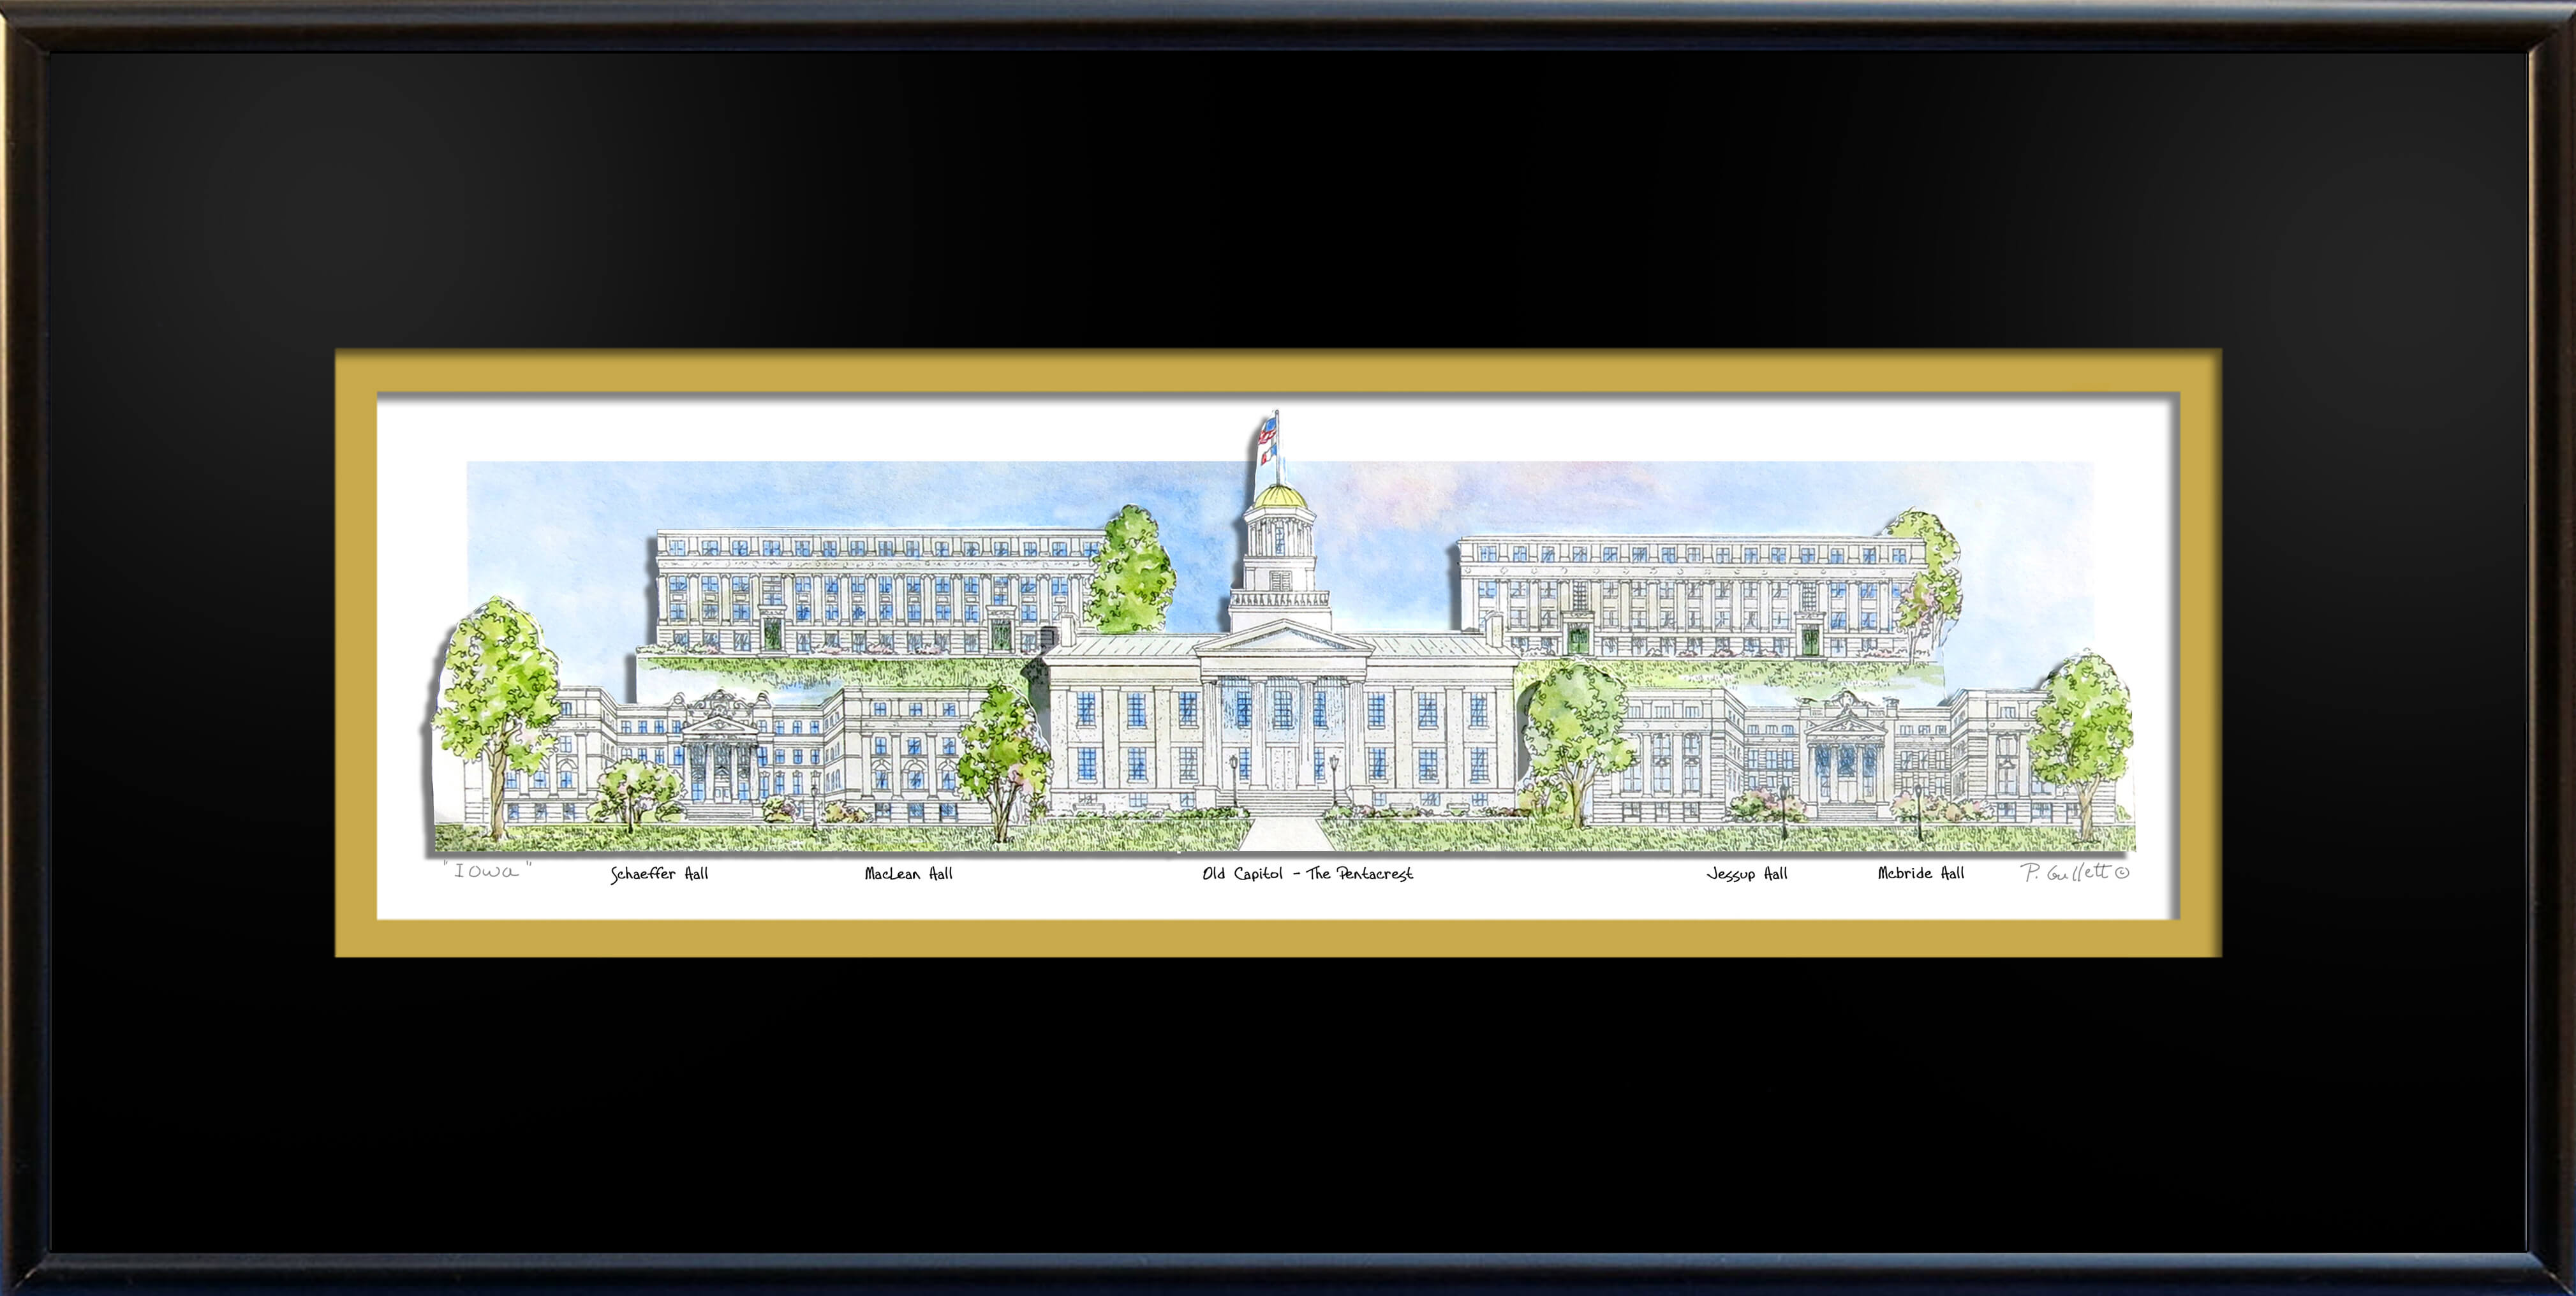 univ of Iowa frame